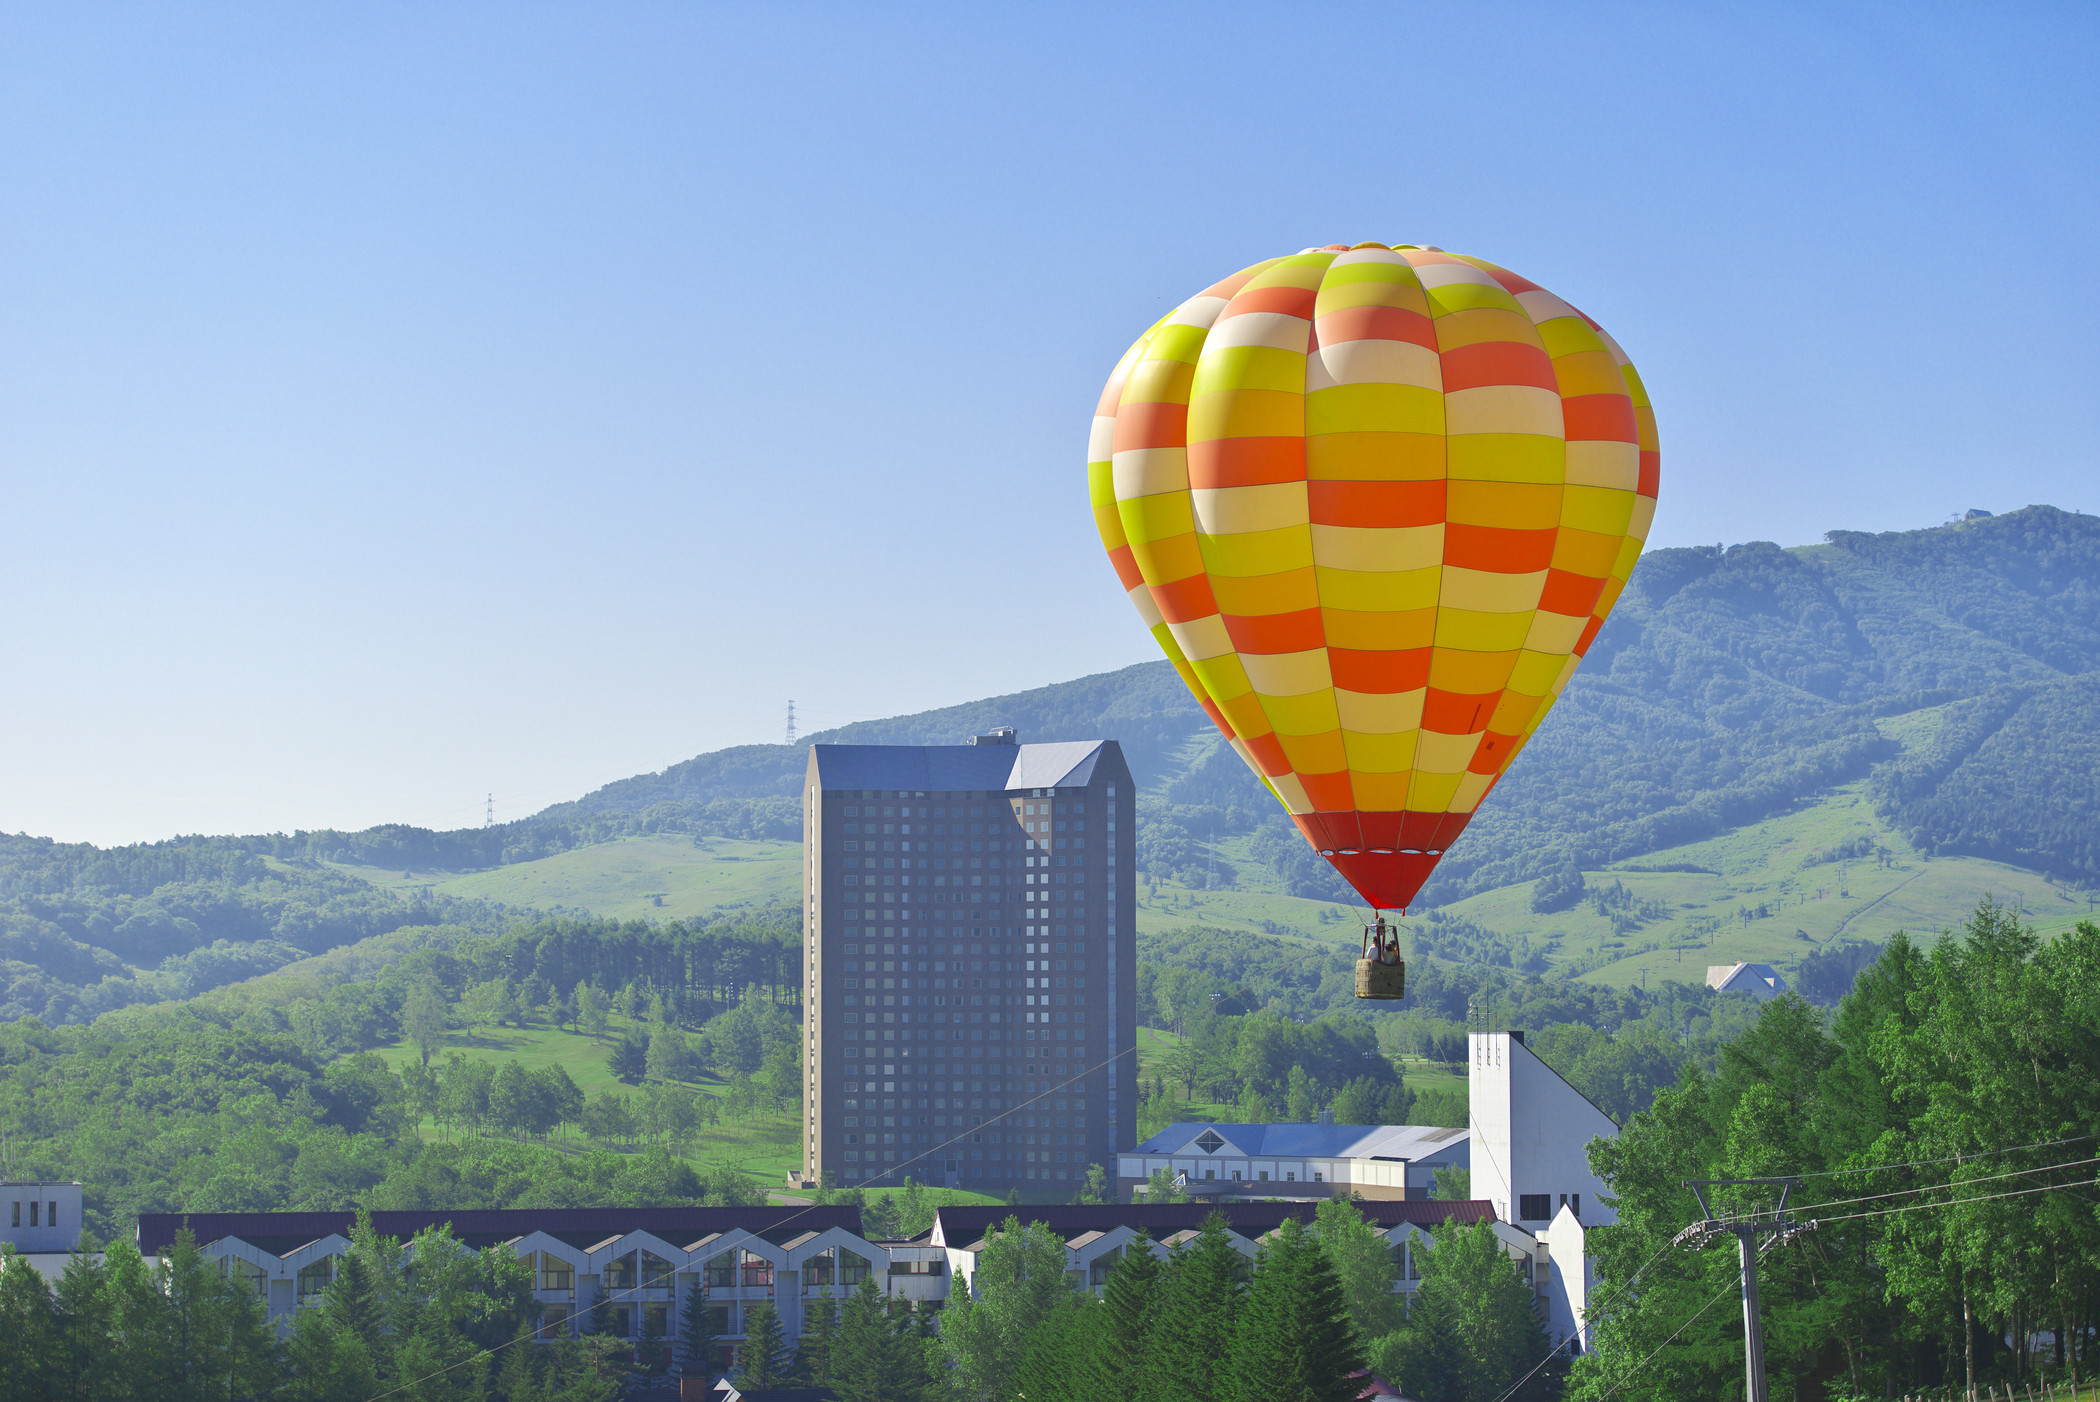 The westin rusutsu resort hot air balloon overview rusutsu if you cannot download more button images right click download voltagebd Gallery